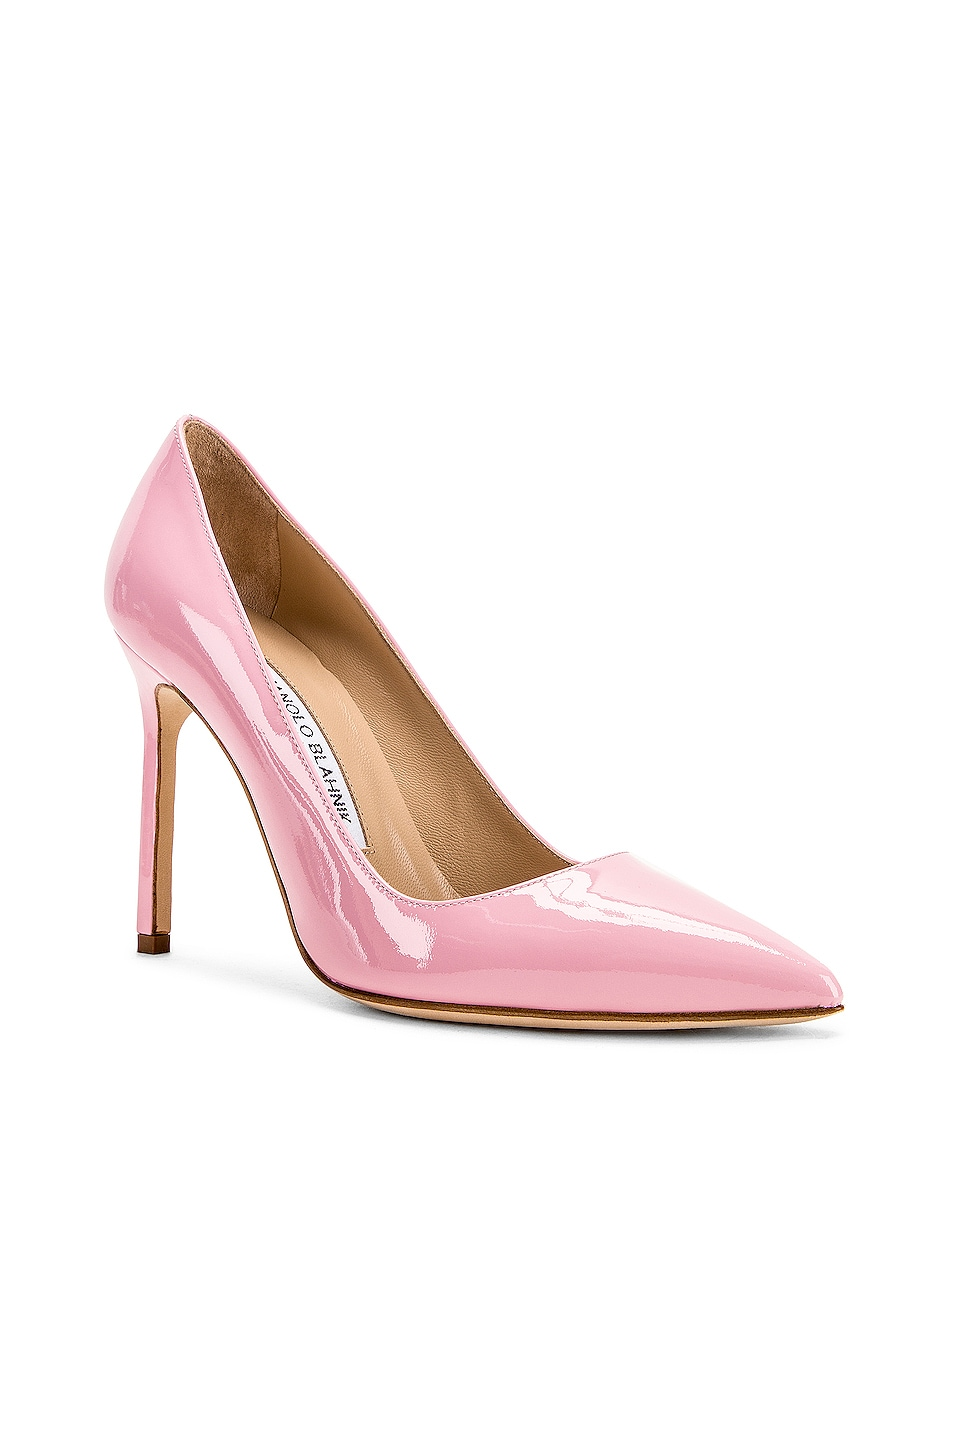 Image 2 of Manolo Blahnik BB Pump in Baby Pink Patent